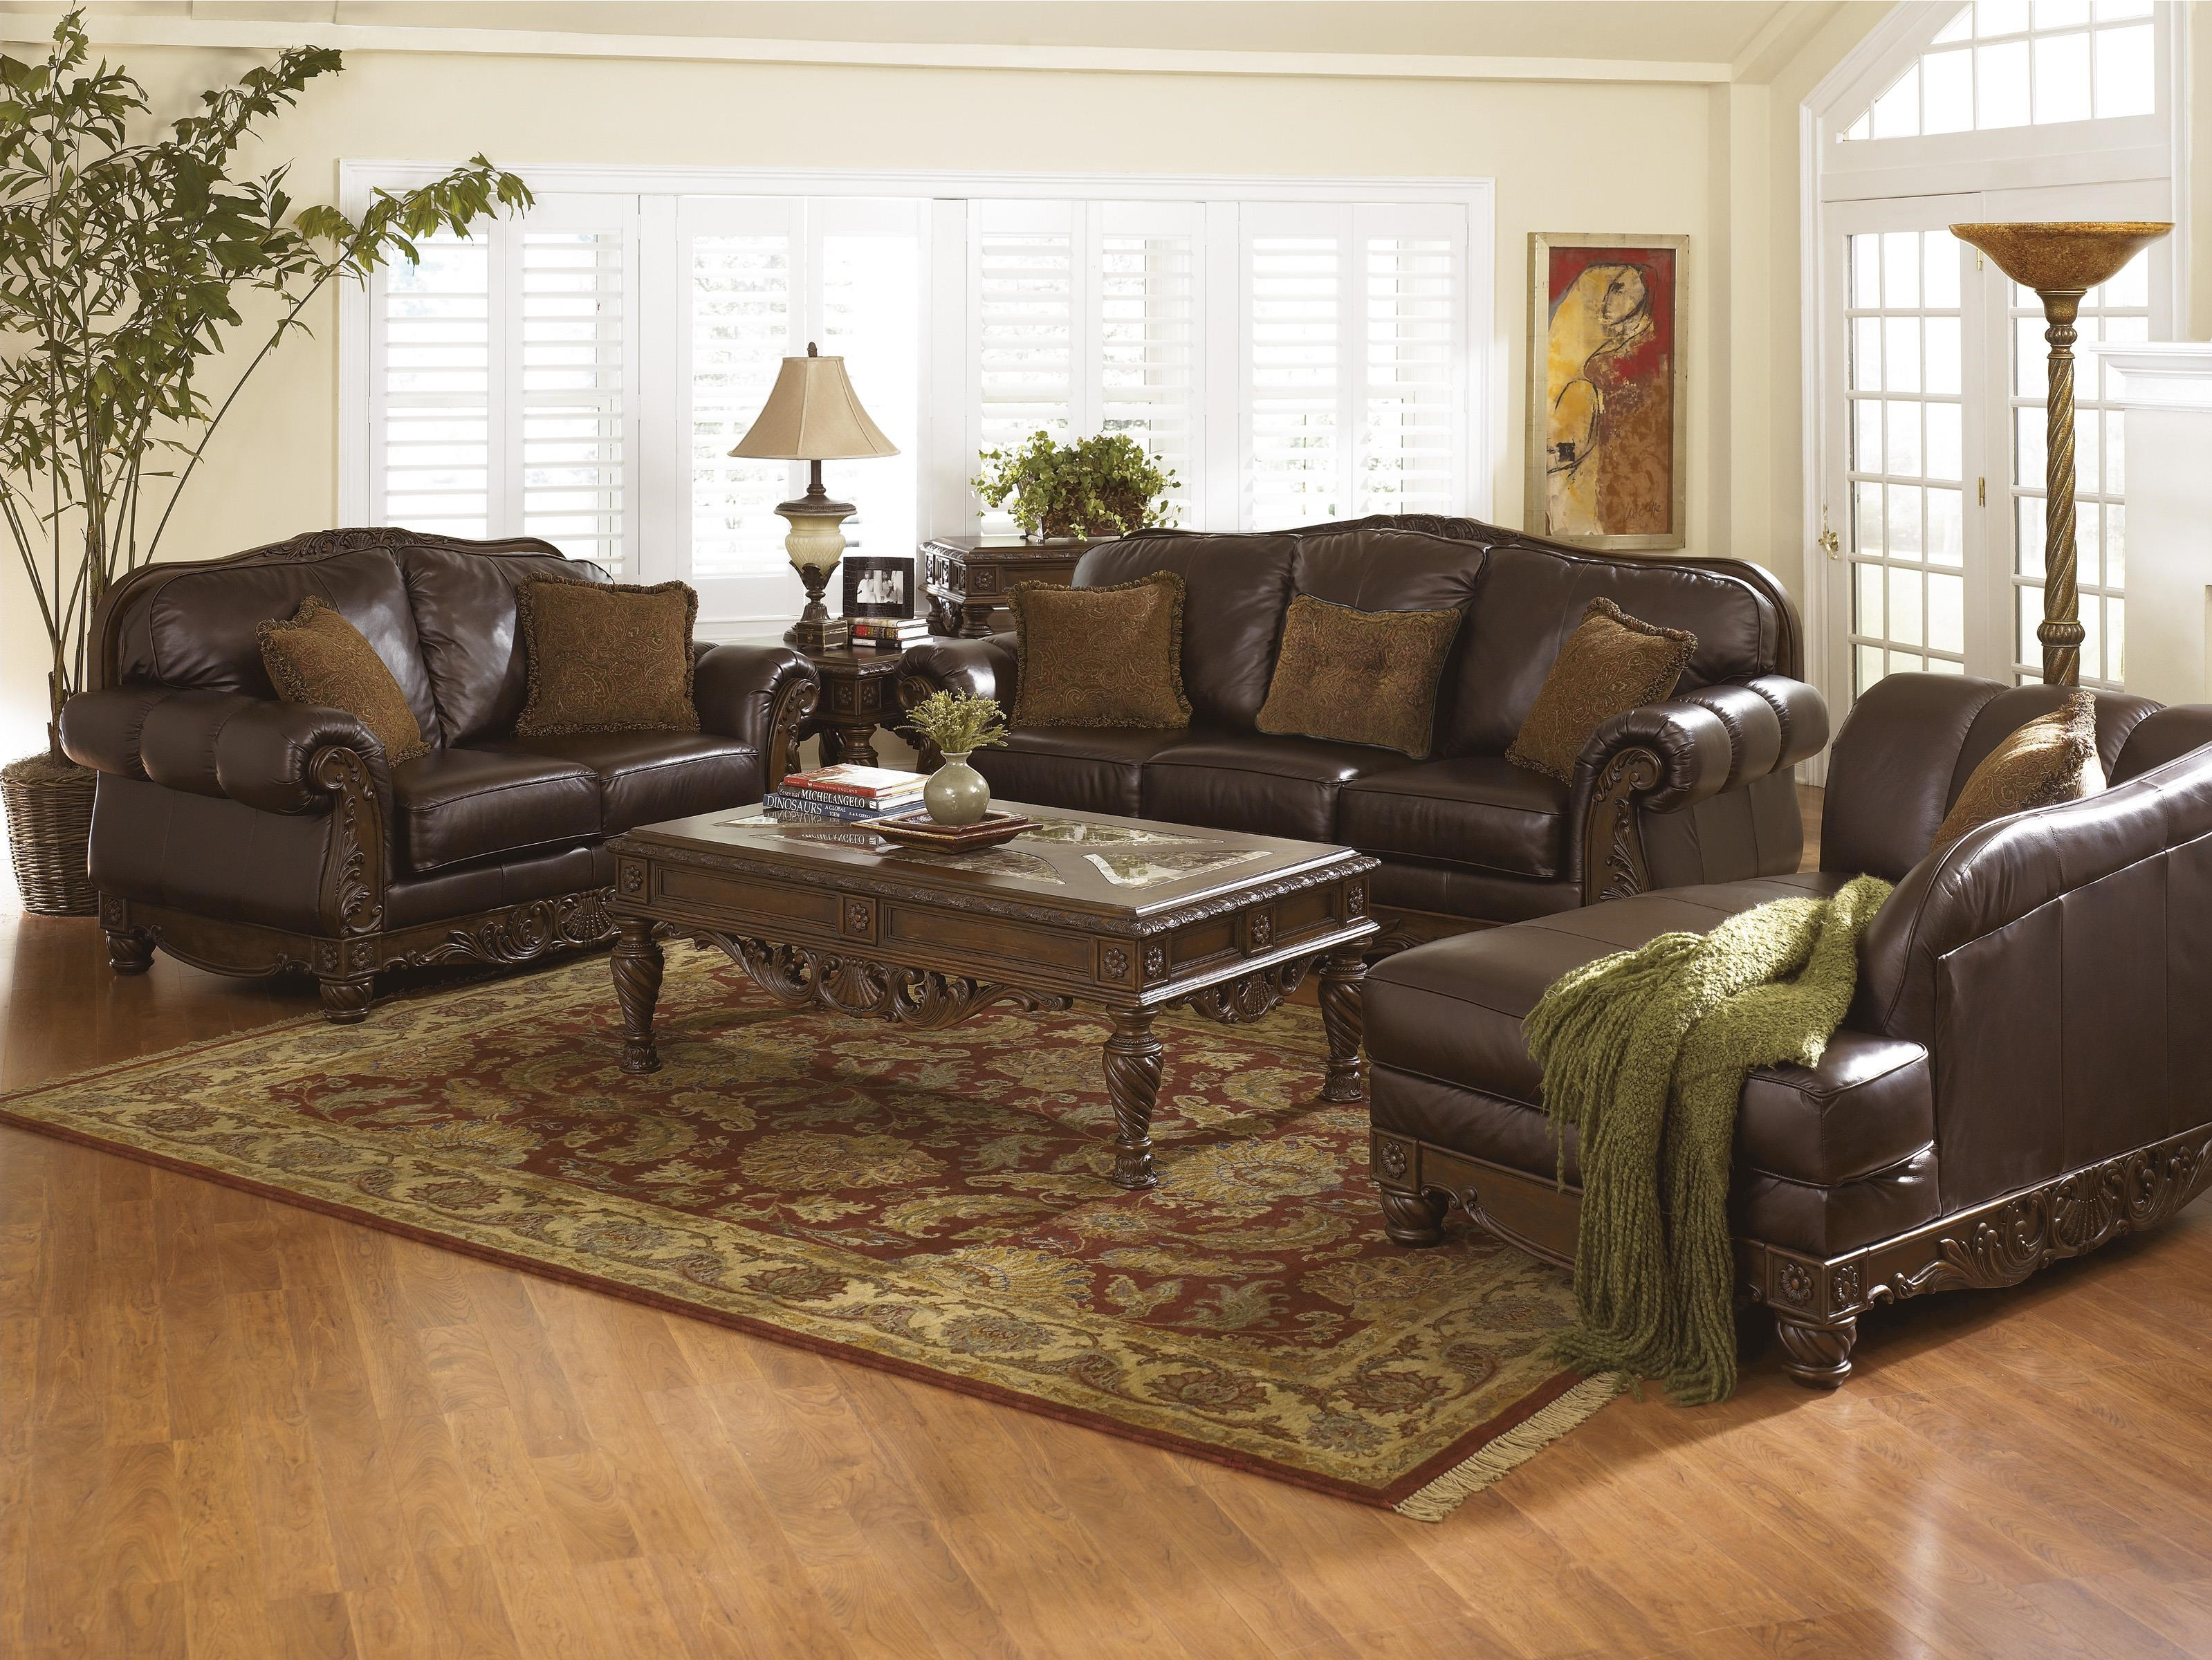 north shore living room shore living room furniture 13454